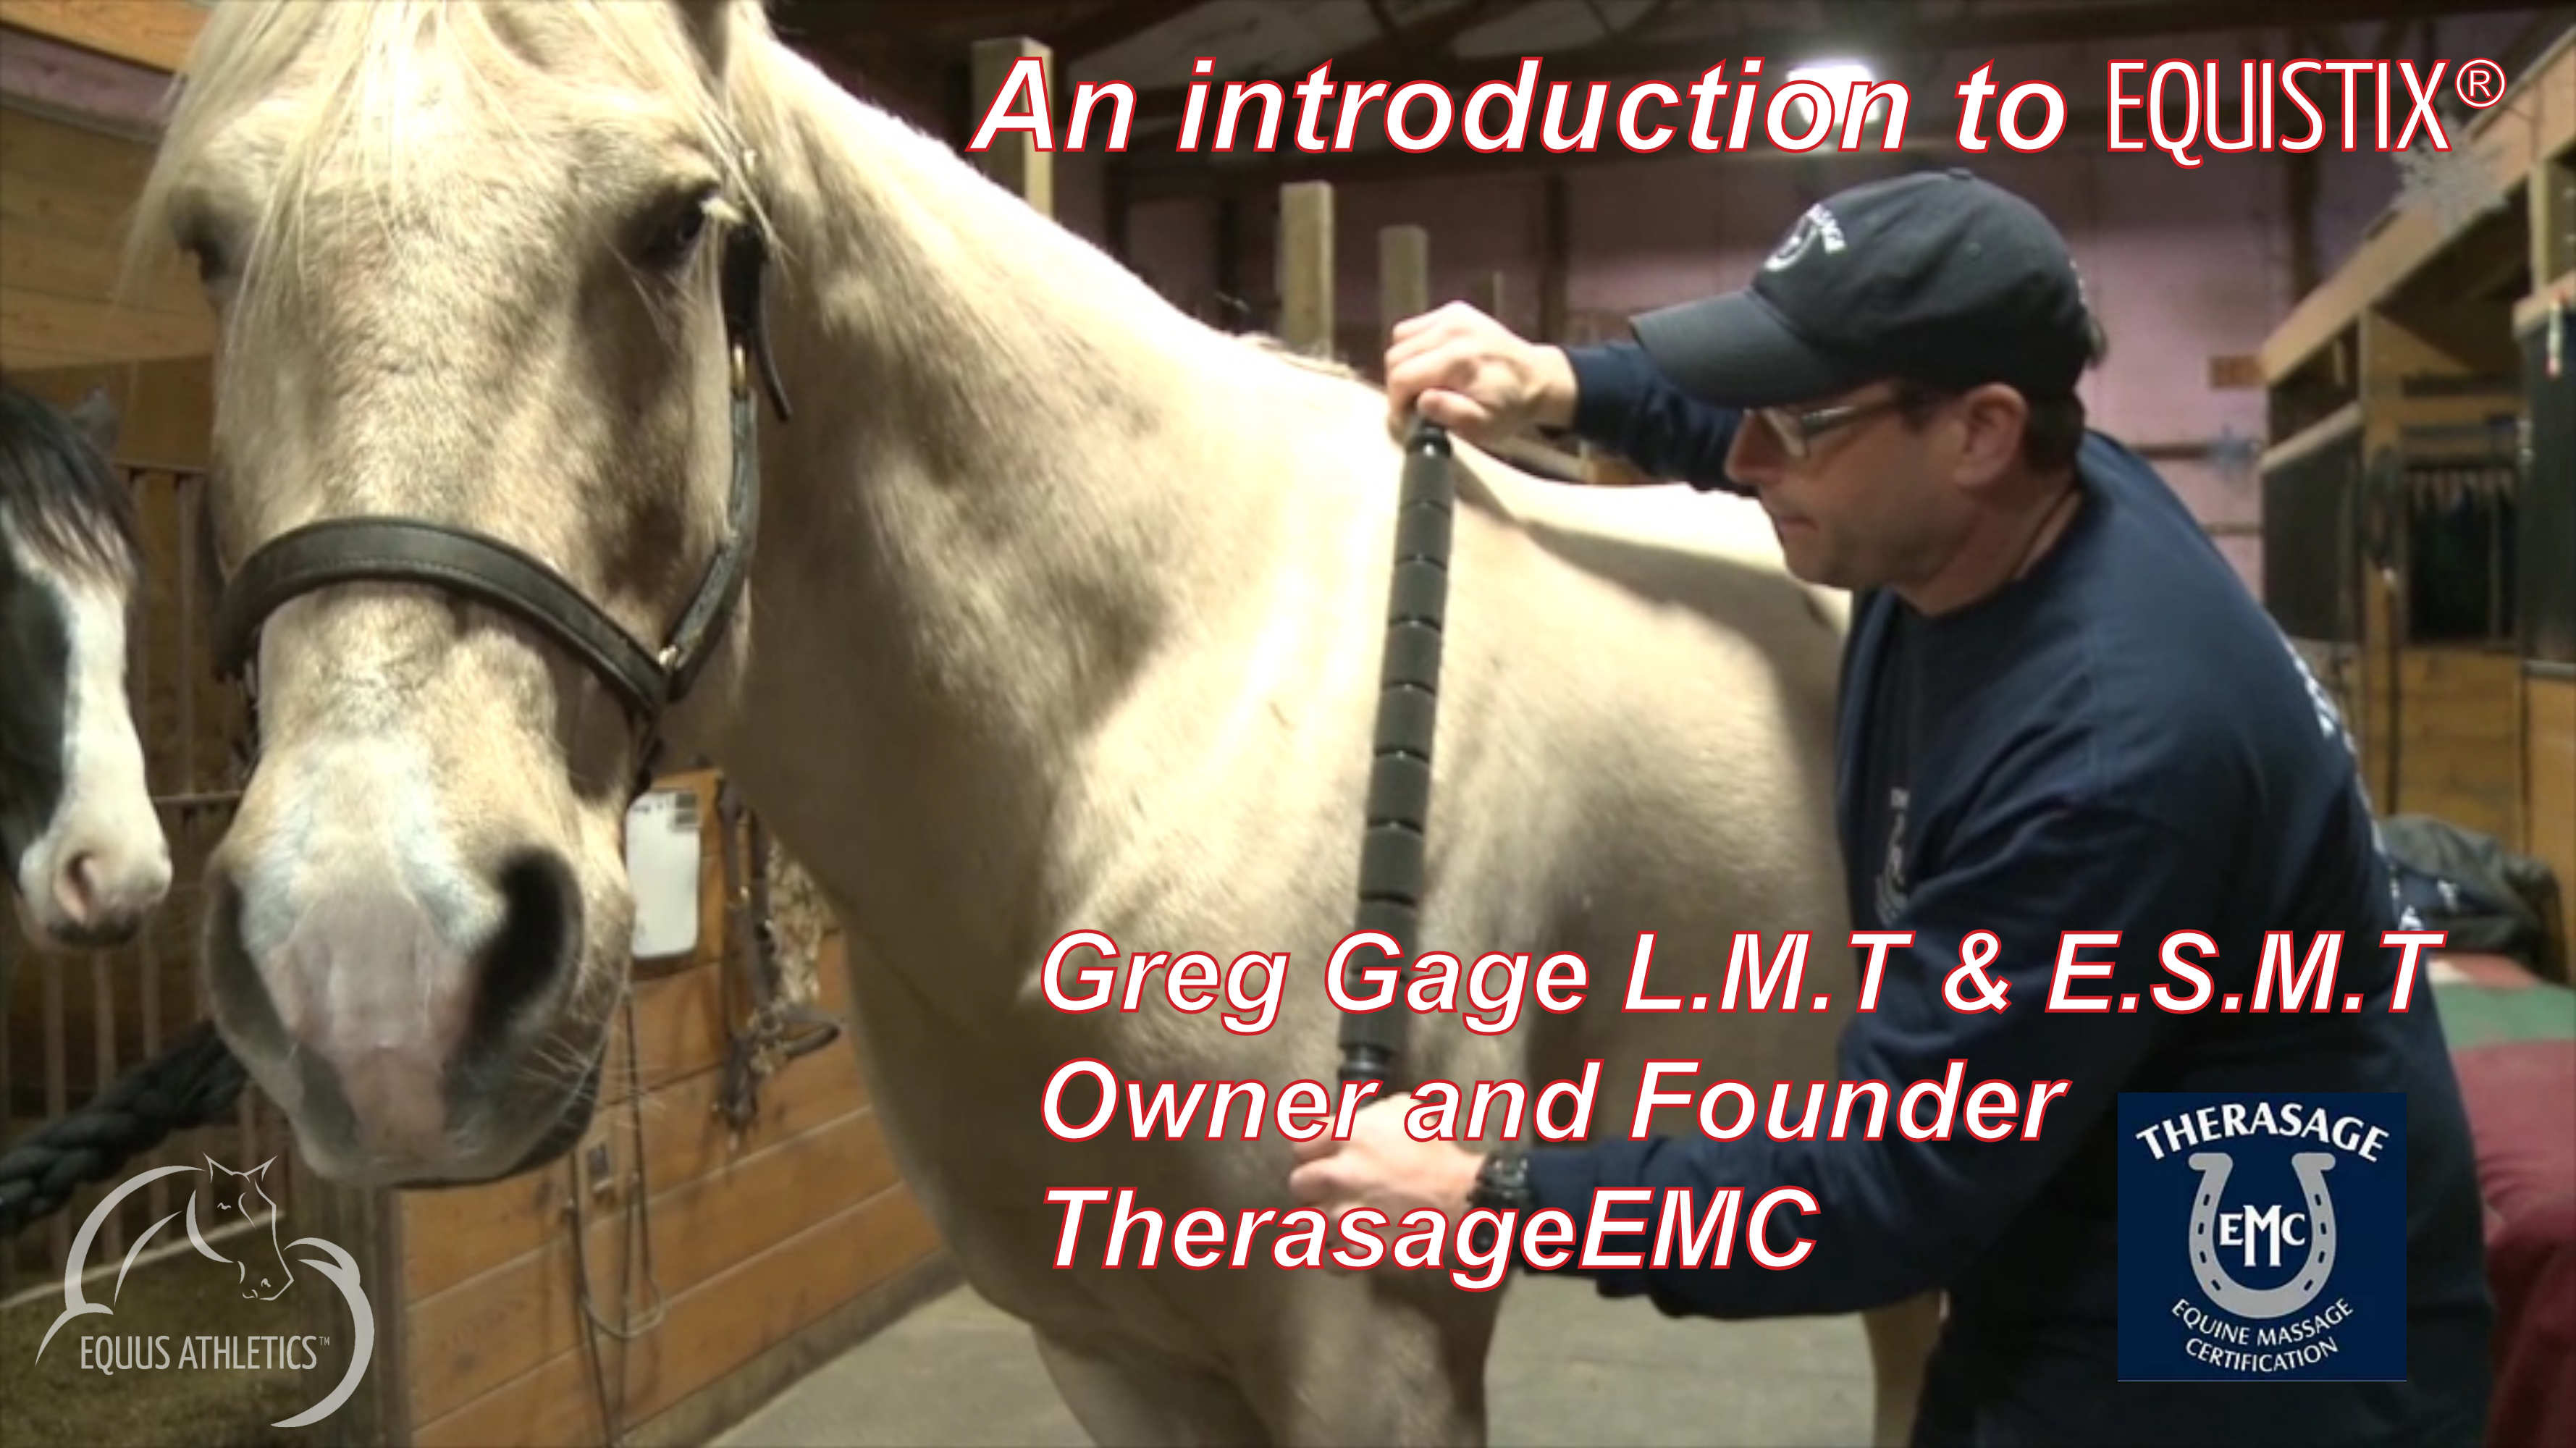 An introduction to EQUISTIX® by the founder of Therasage EMC